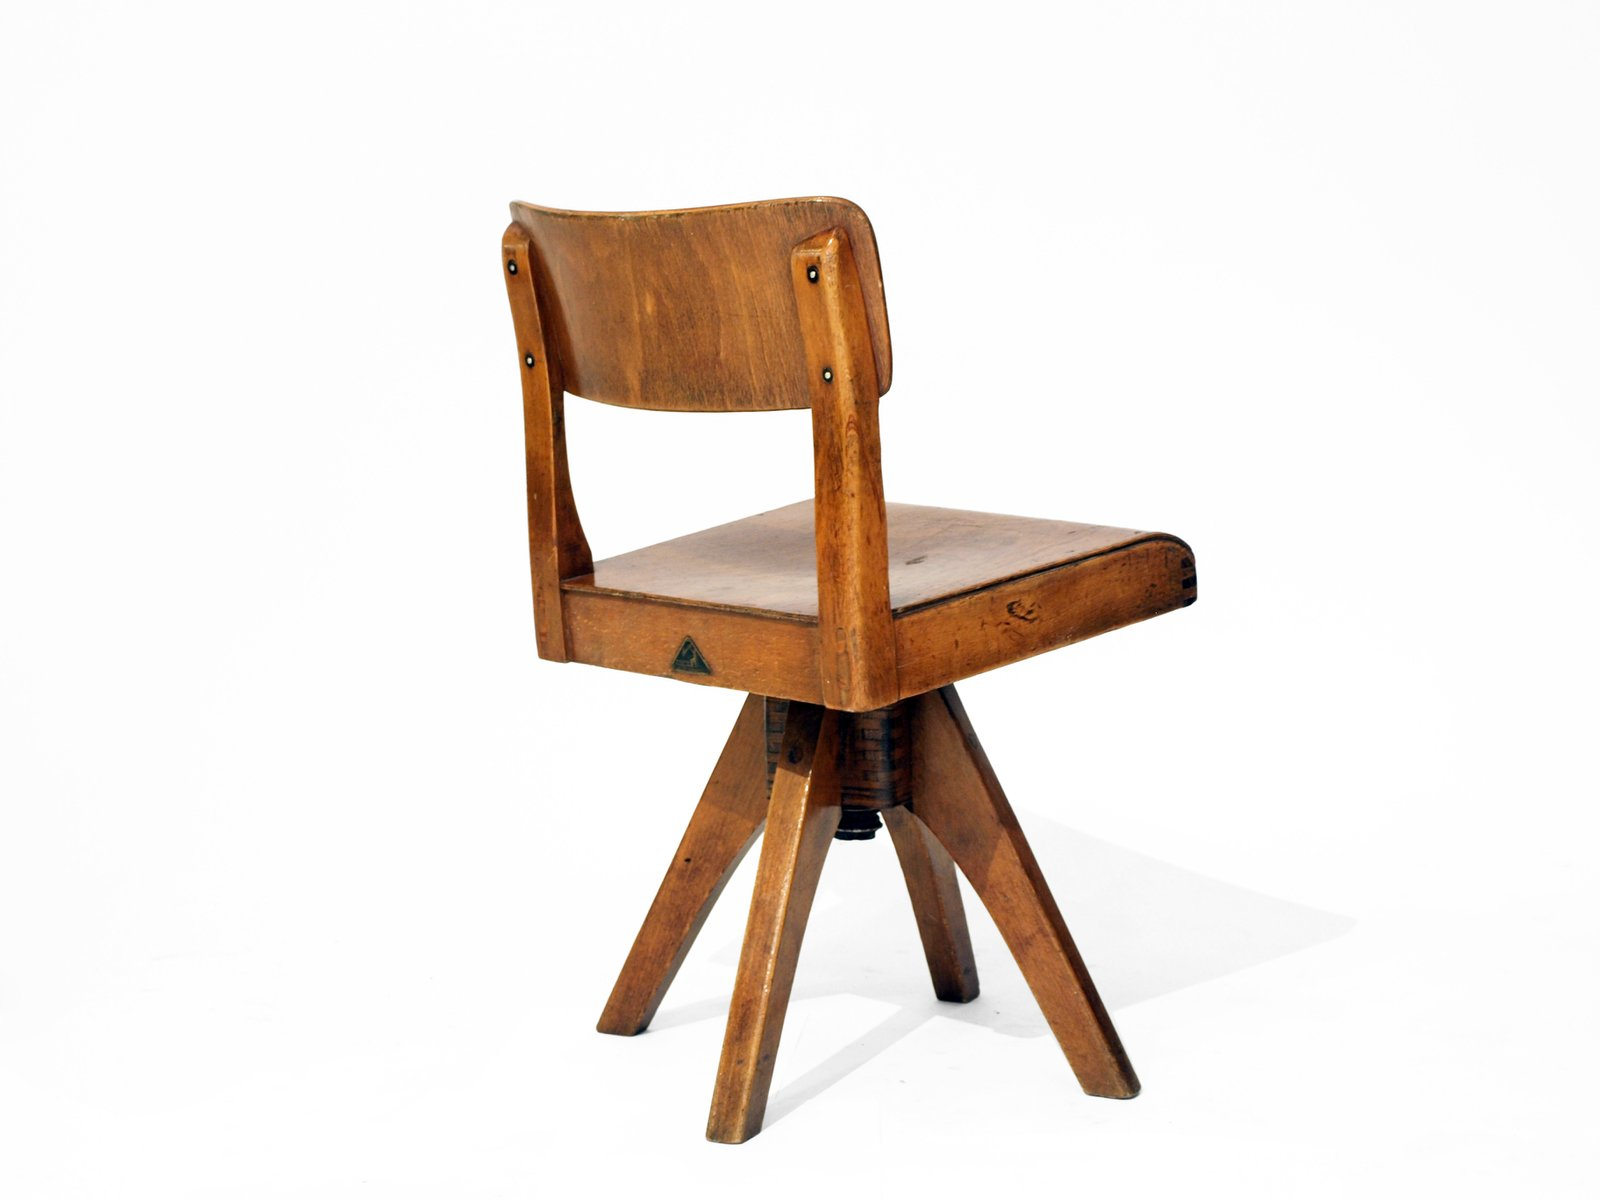 Vintage Wooden Children's Chair by Casala for sale at Pamono